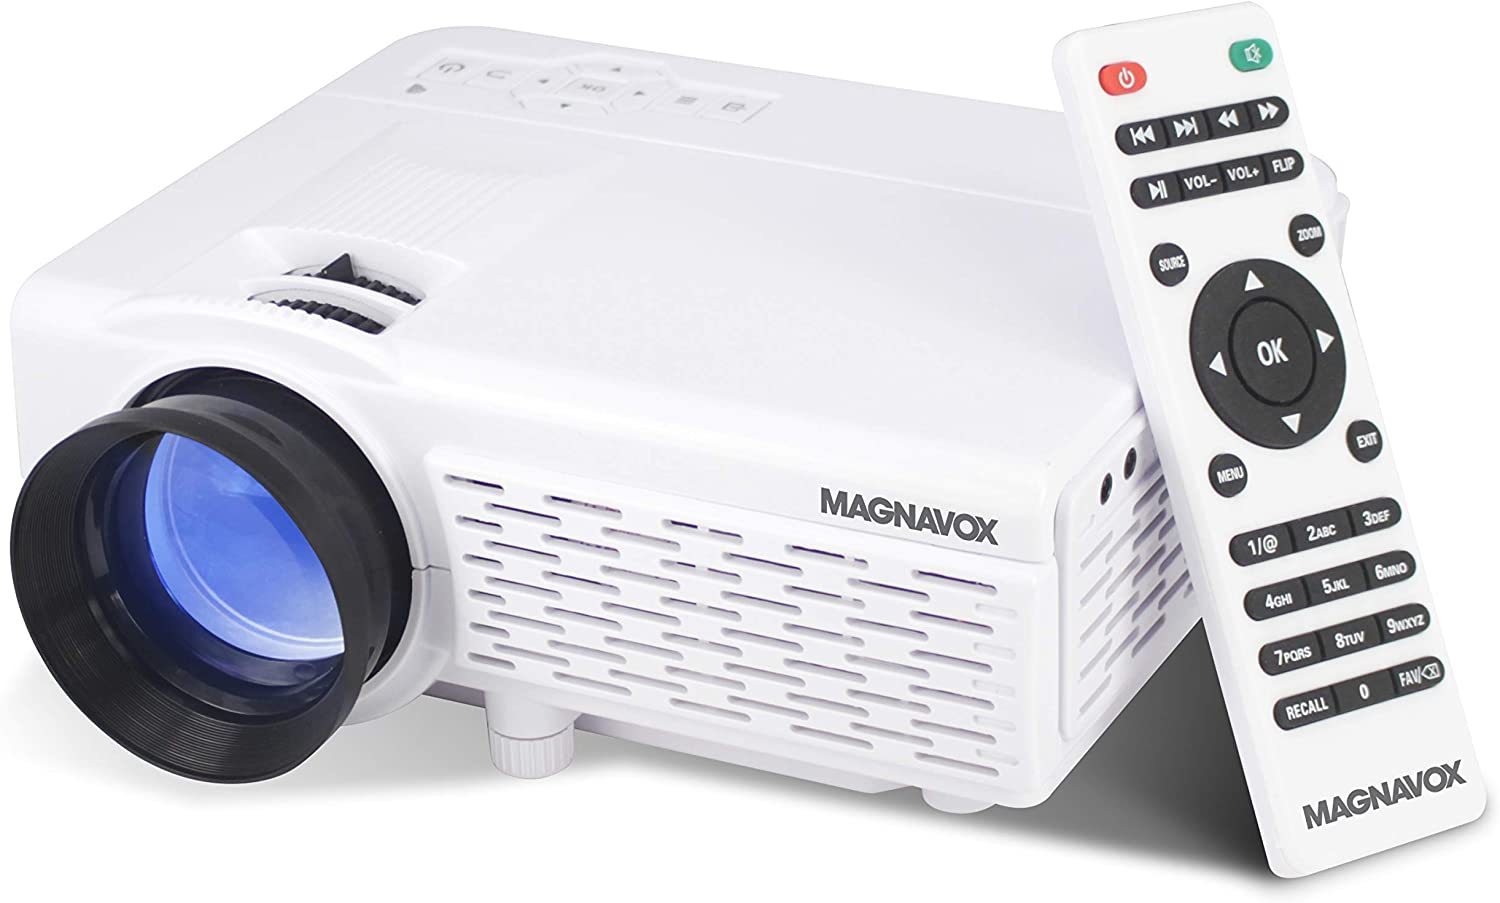 Magnavox MP601 Portable Home Theater Projector with Bluetooth Wireless Technology and Remote in White | Supports 1080p HD Quality | HDMI, USB, AV, & VGA Ports |